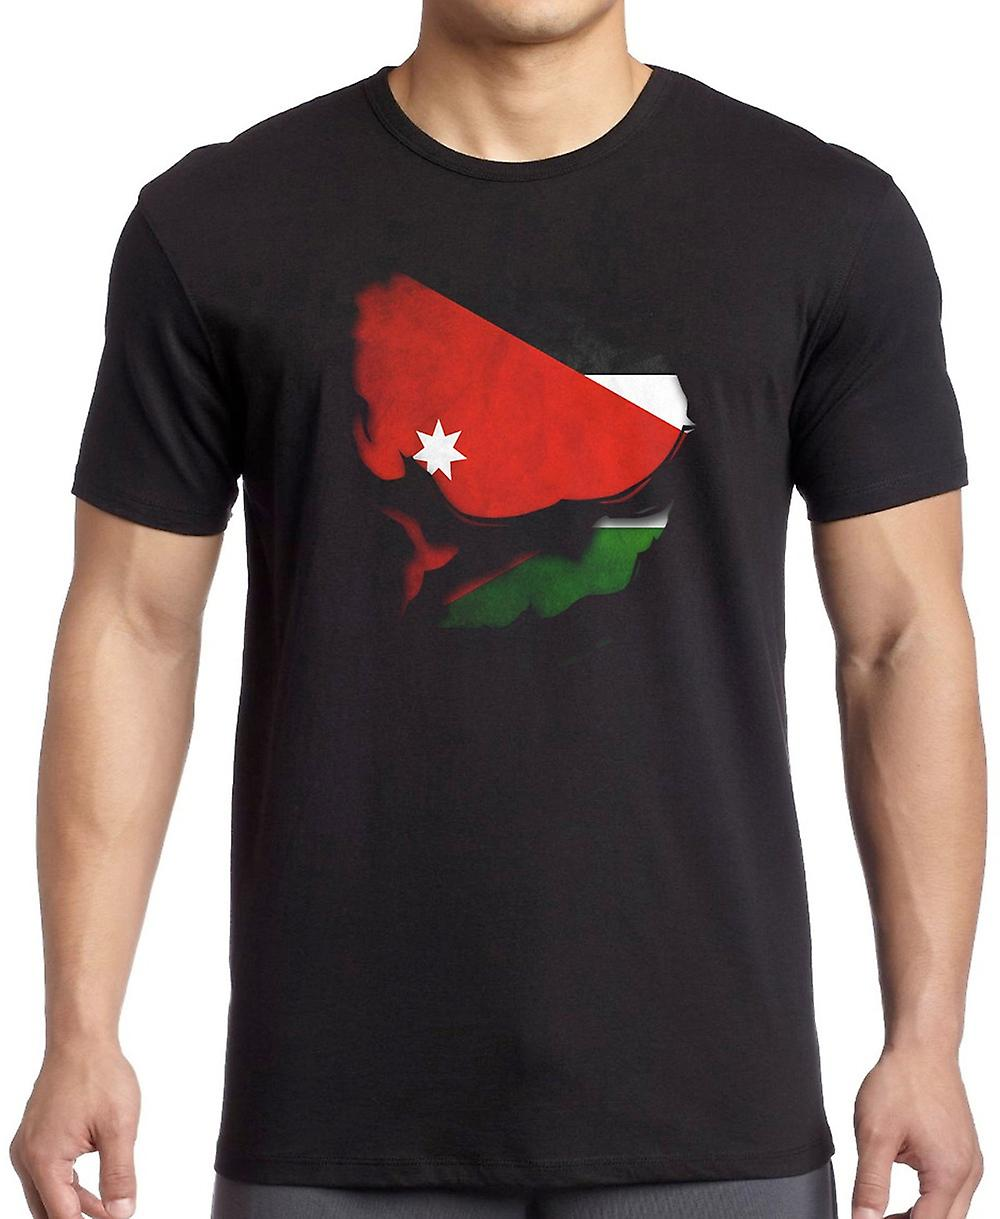 Kuwait Kuwaiti Ripped Effect Under Shirt T Shirt